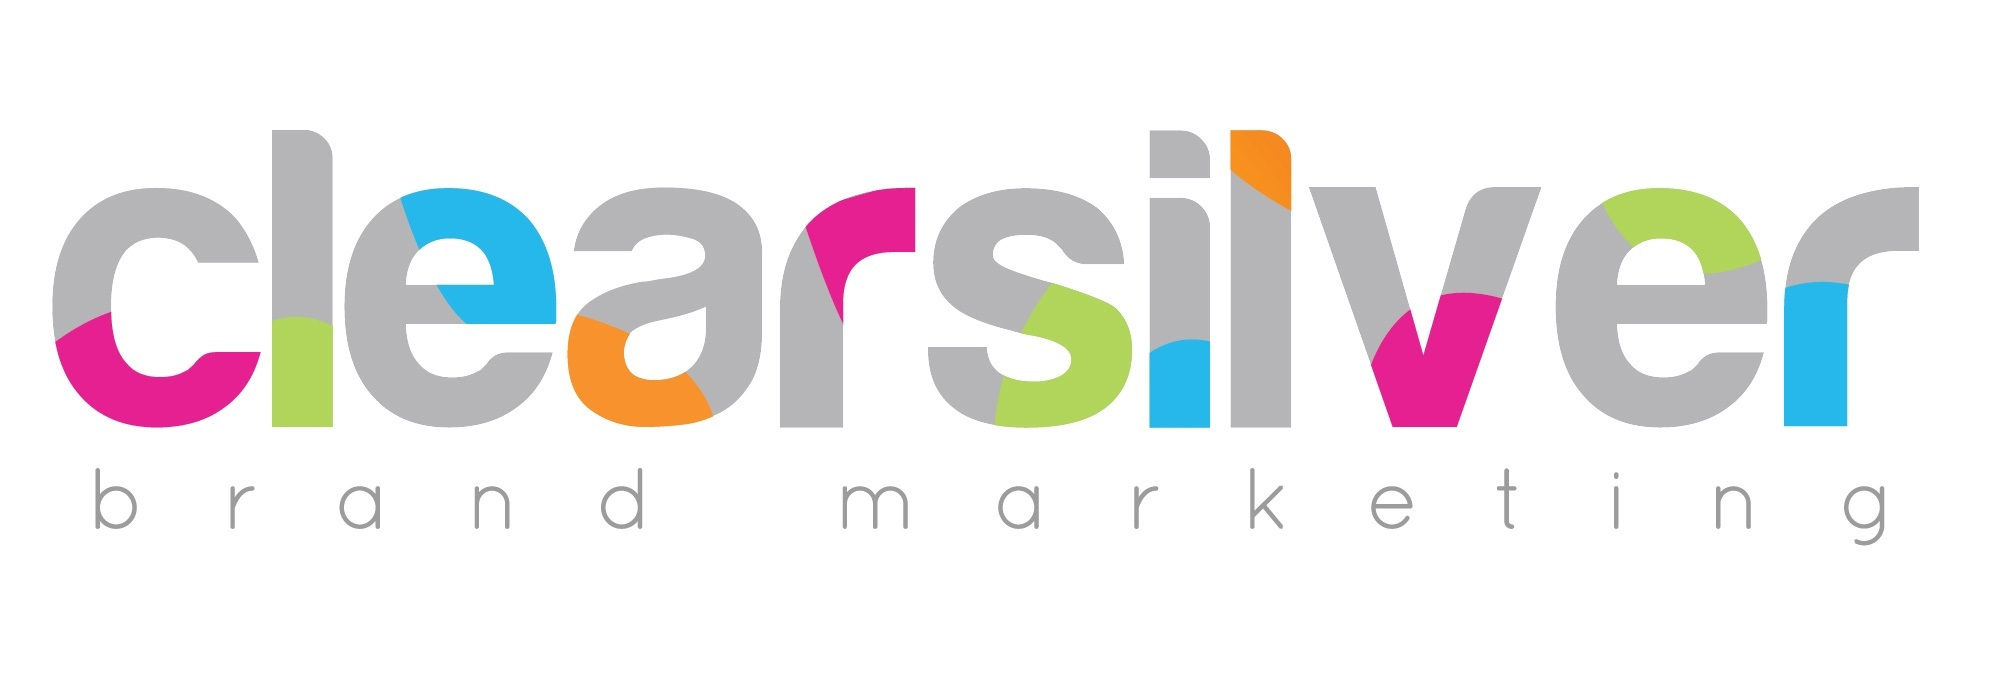 As a full-service marketing agency, we are experts in online and offline marketing and communications.